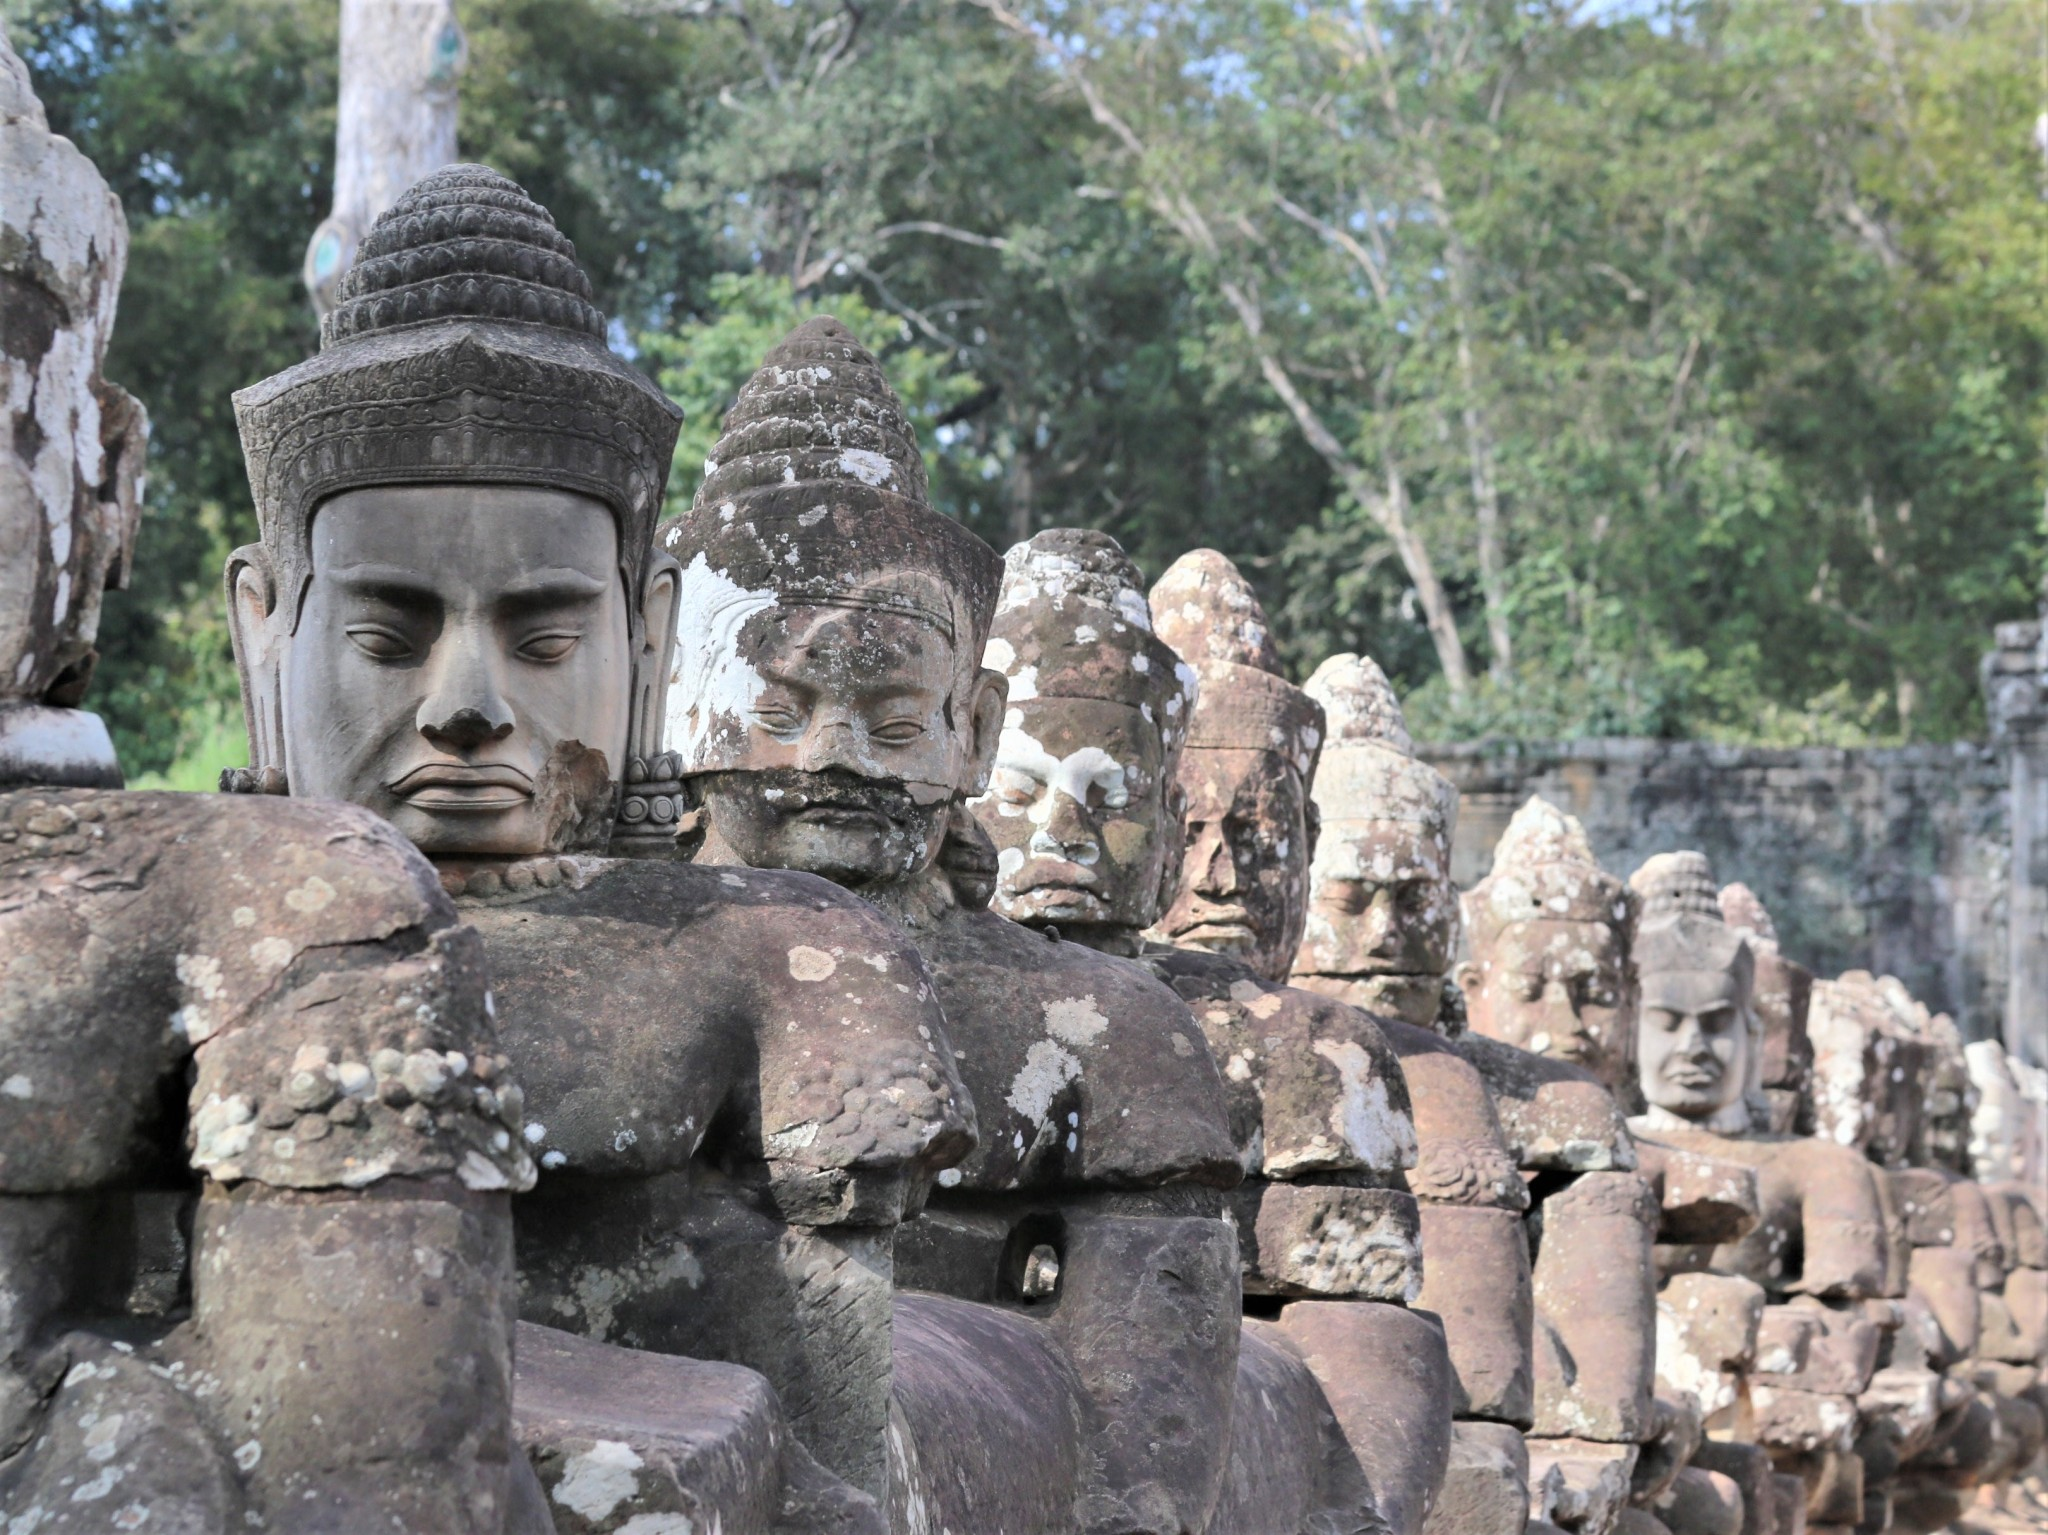 A row of stone statues with sombre facial expressions at Angkor, Cambodia.